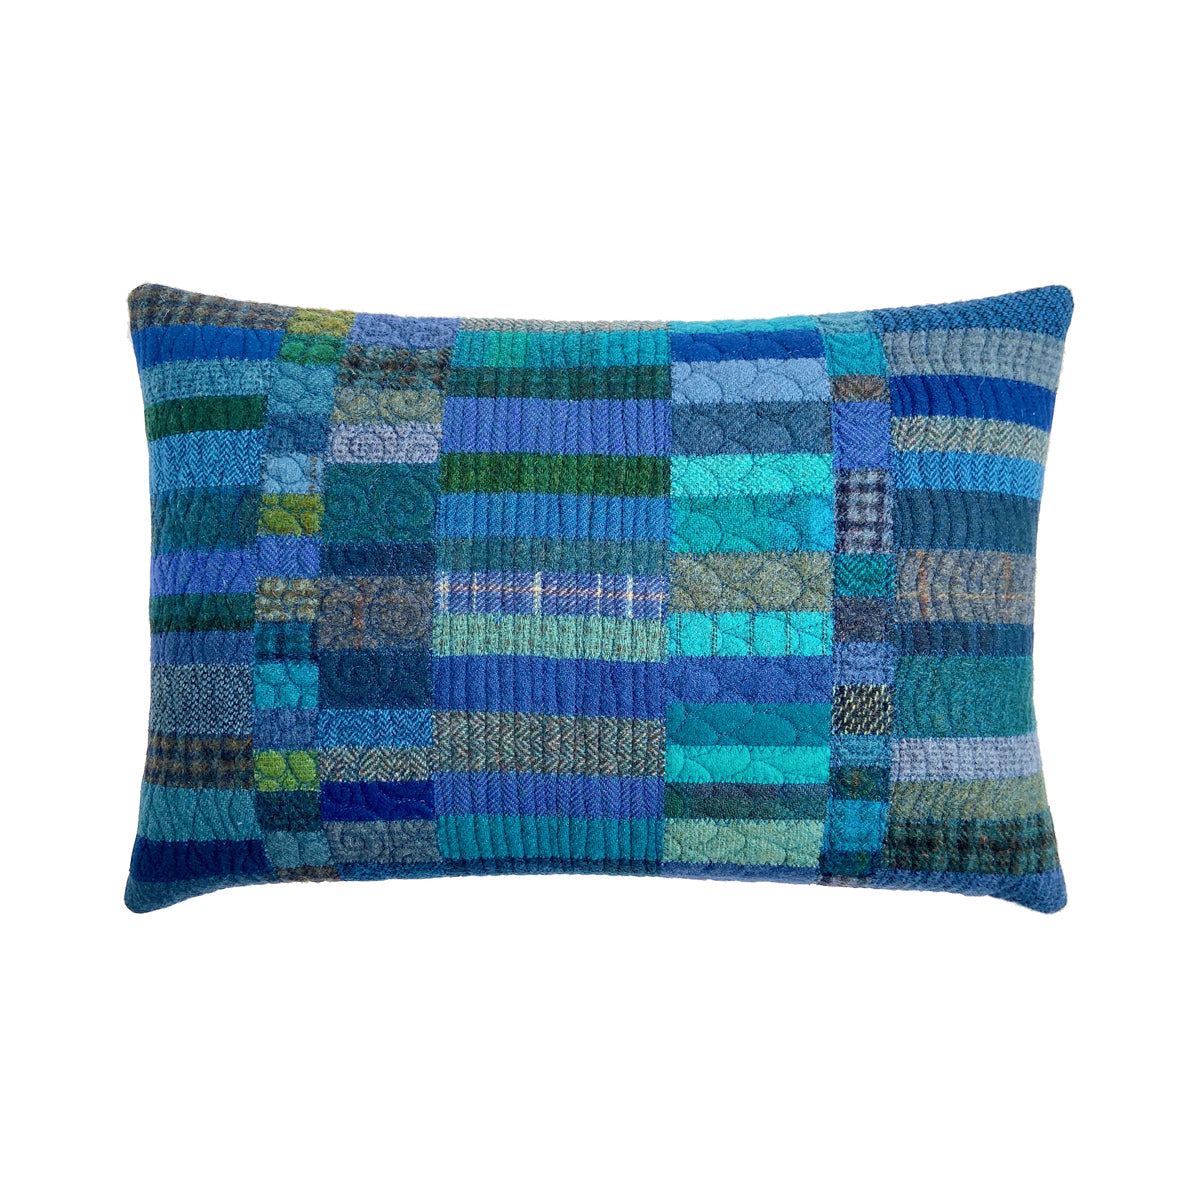 NE 41st Avenue Cushion • 12x18 B